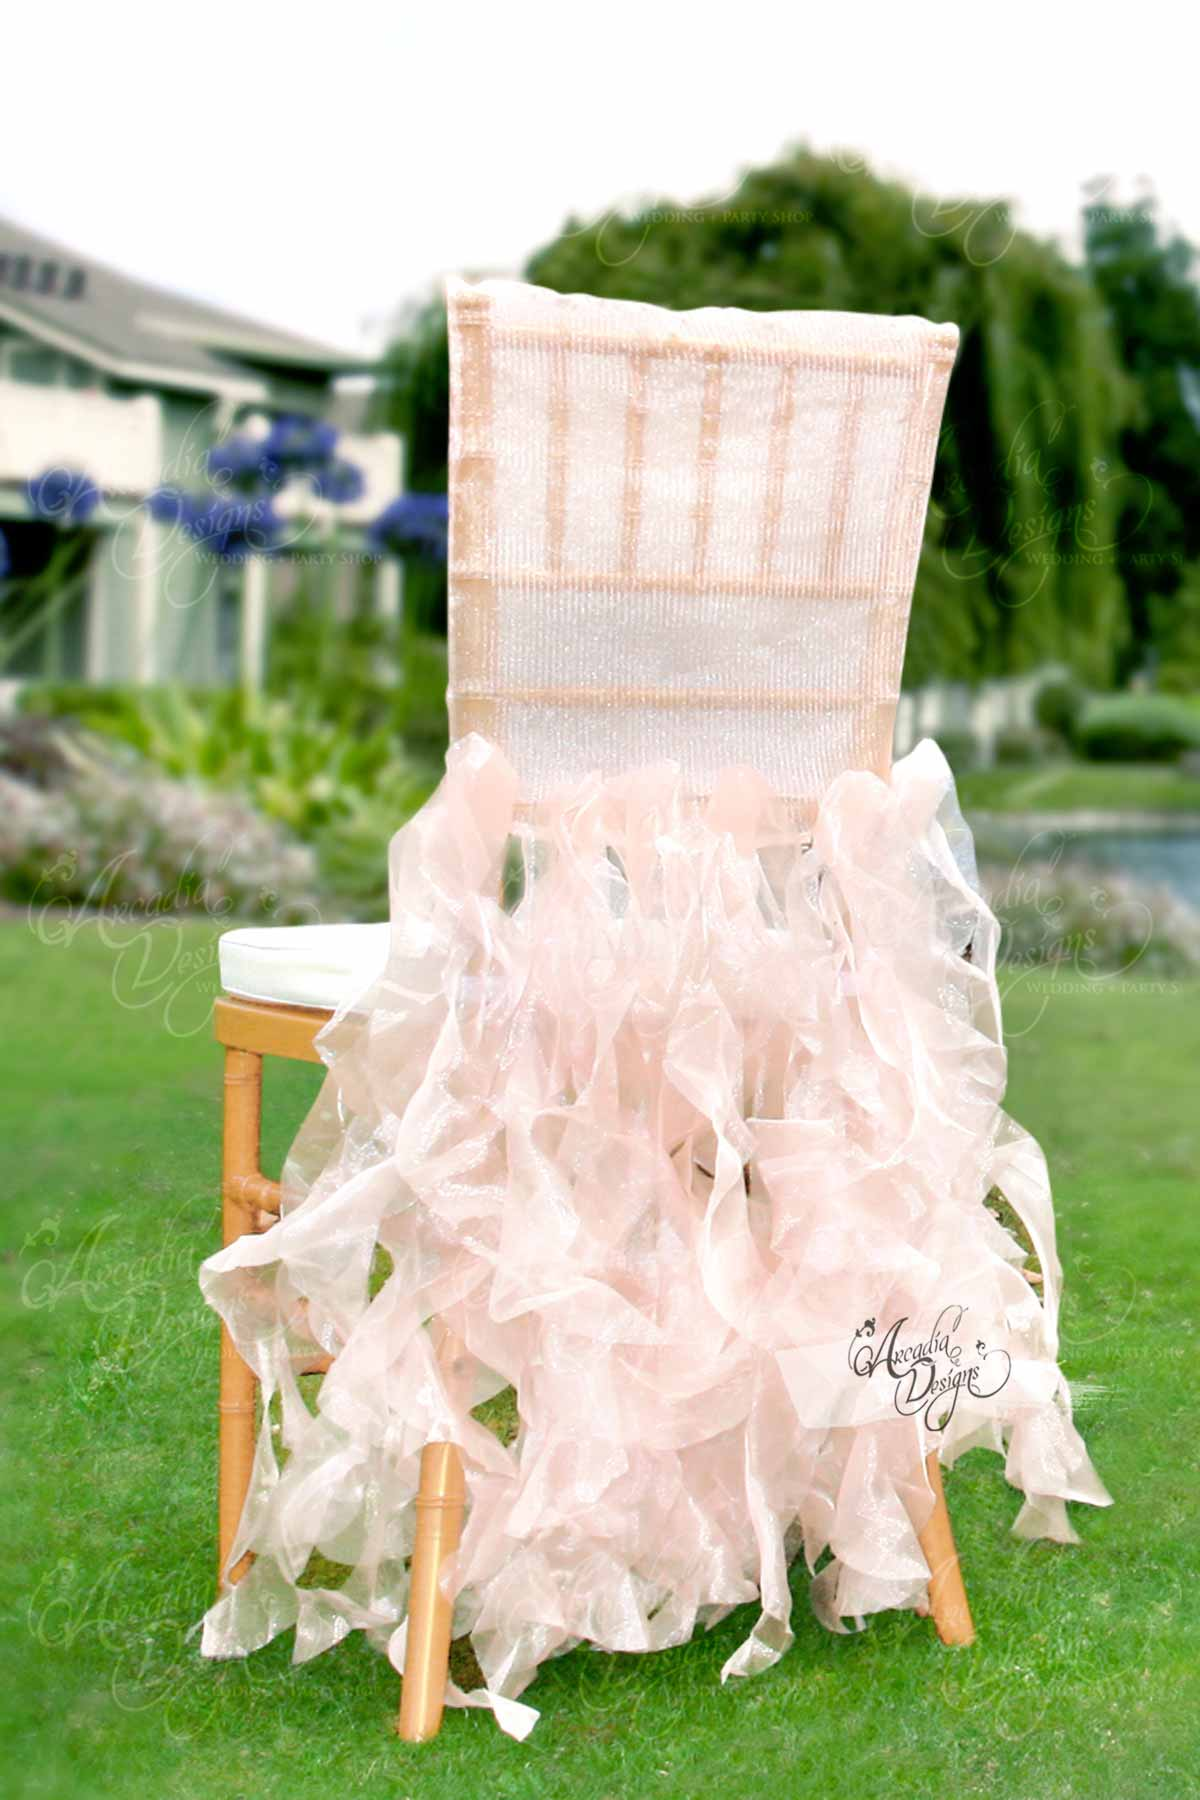 Arcadia Designs Sheer White Ruffled Bridal Chair Cover Pink